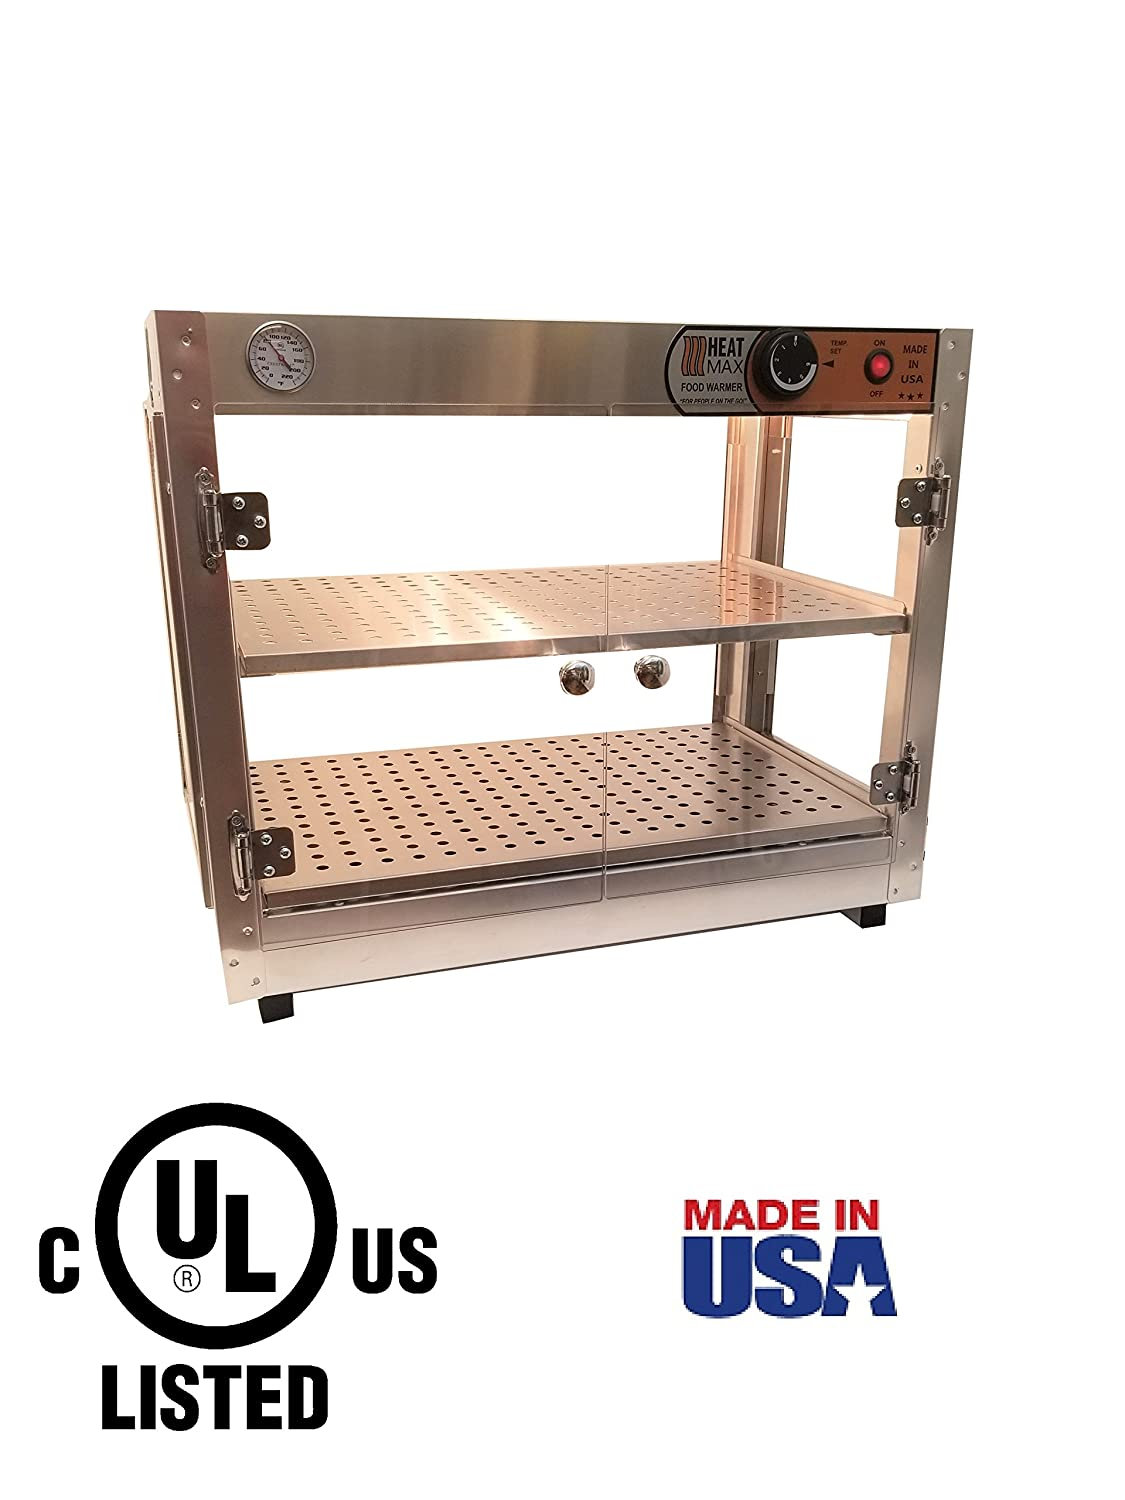 HeatMax 24x15x20 Commercial Food Warmer, Pizza, Pastry, Patty, Empanada, Catering, Concession, Fund Raising, Heated Display Case